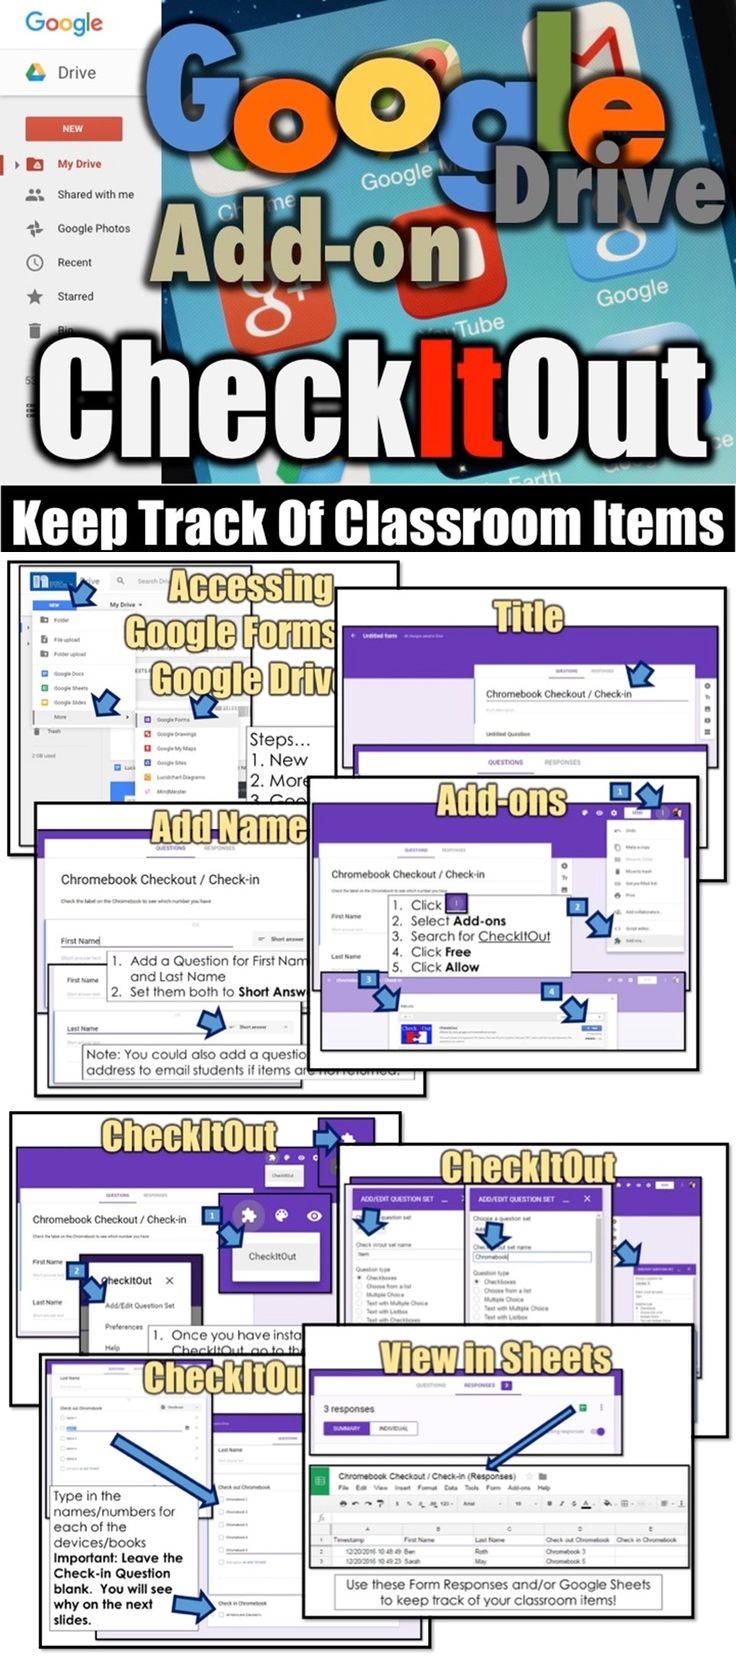 Use CheckItOut to keep track of digital devices, textbooks and other classroom items.   CheckItOut is an add-on for Google Drive Forms